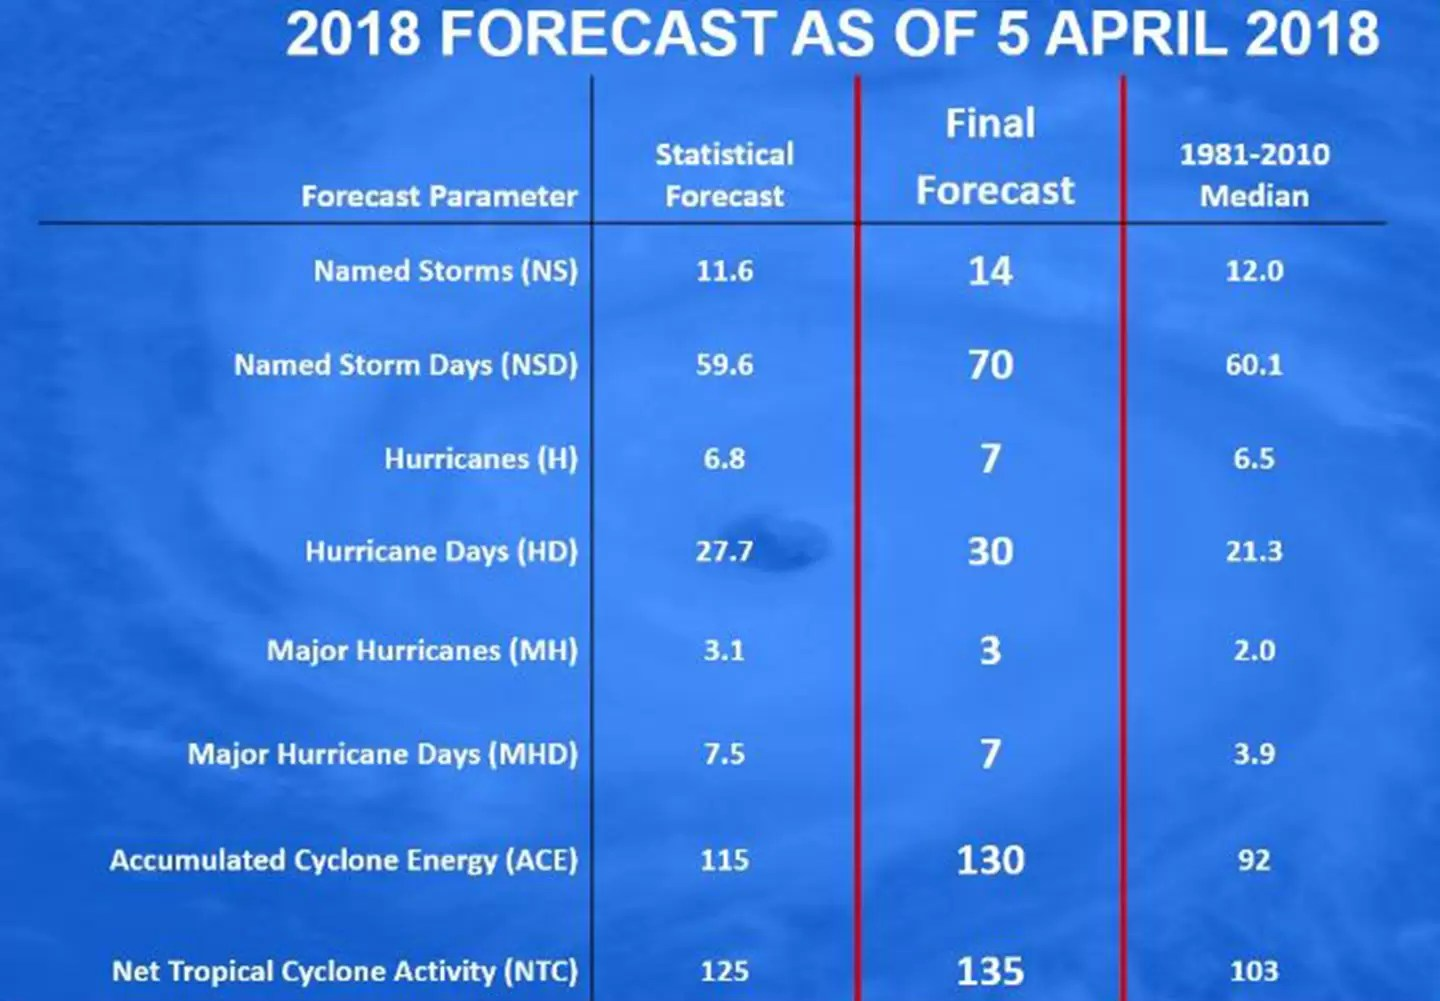 2018 Hurricane Forecast As Of April 5th 2018